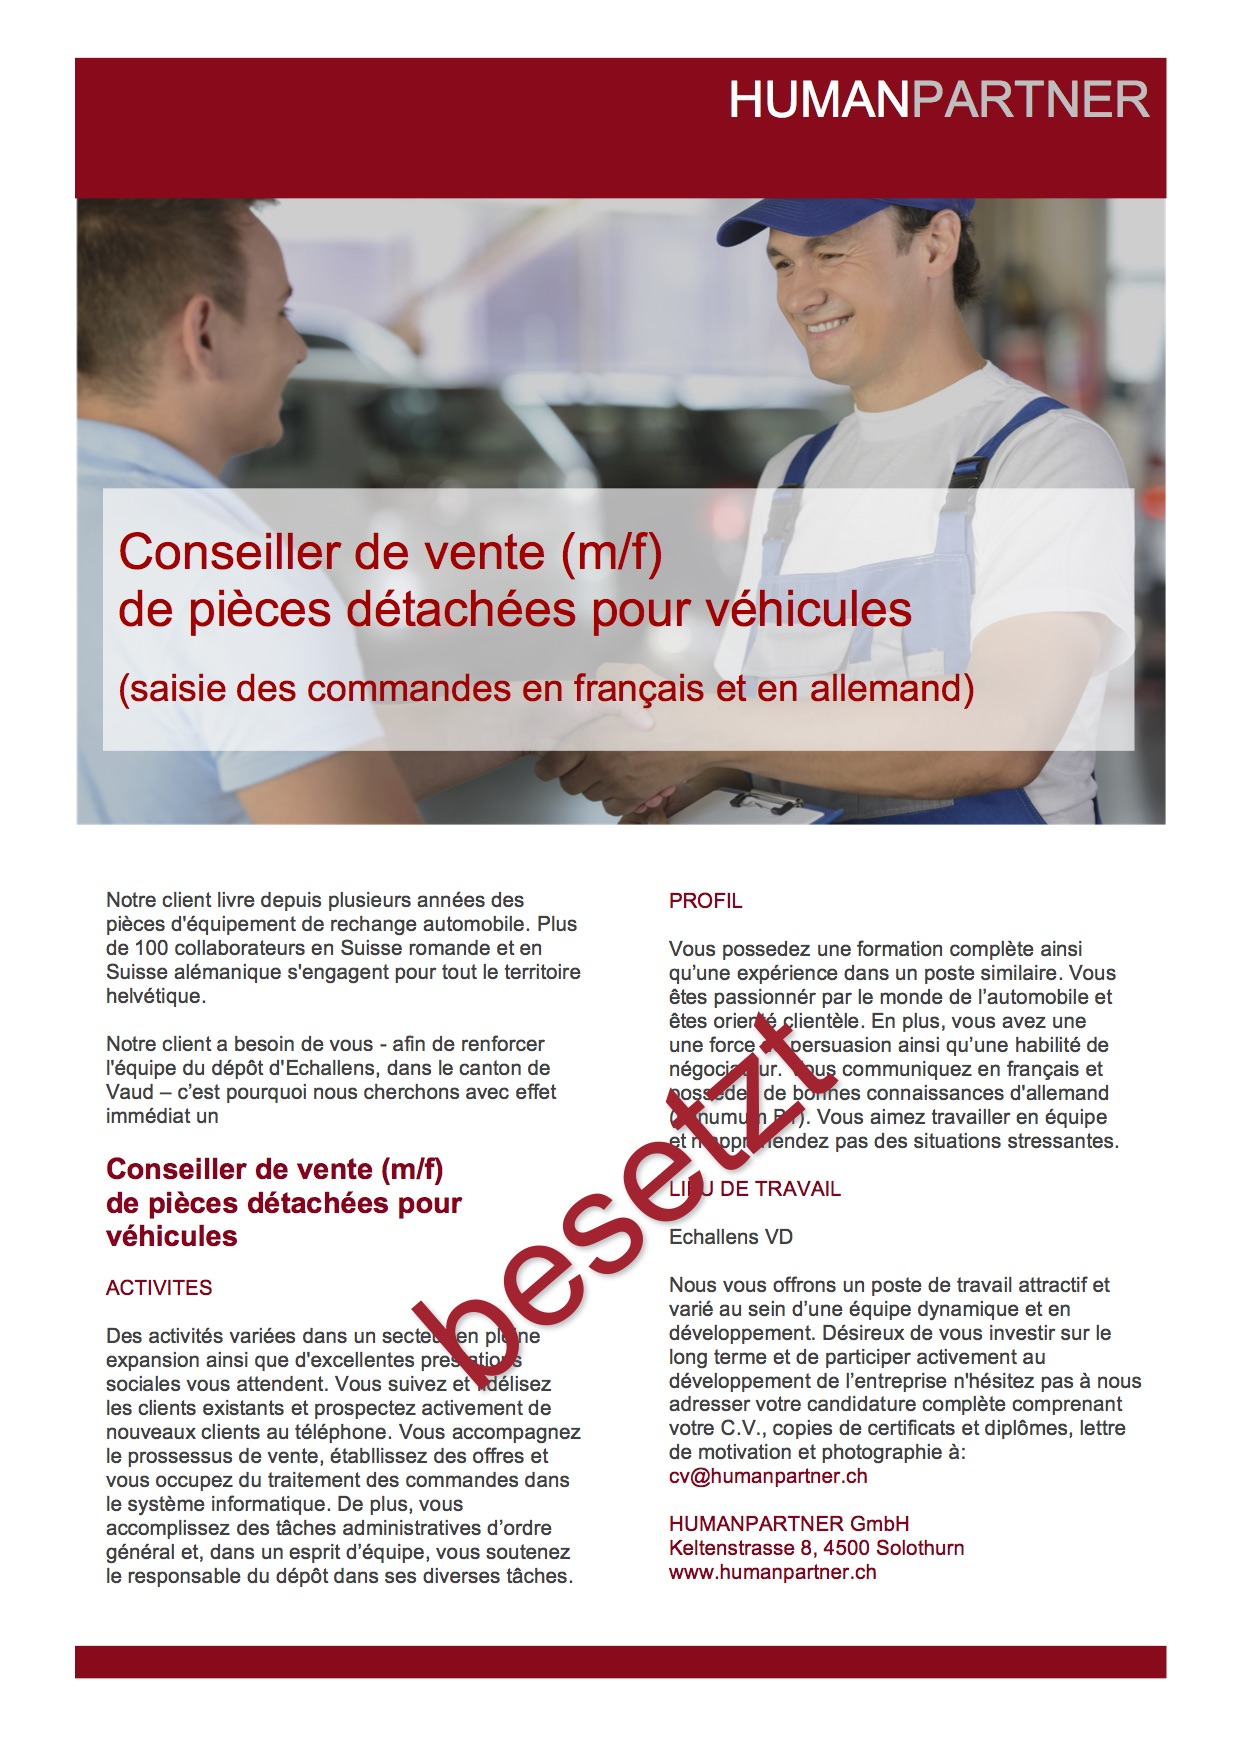 specialiste du commerce - 2017